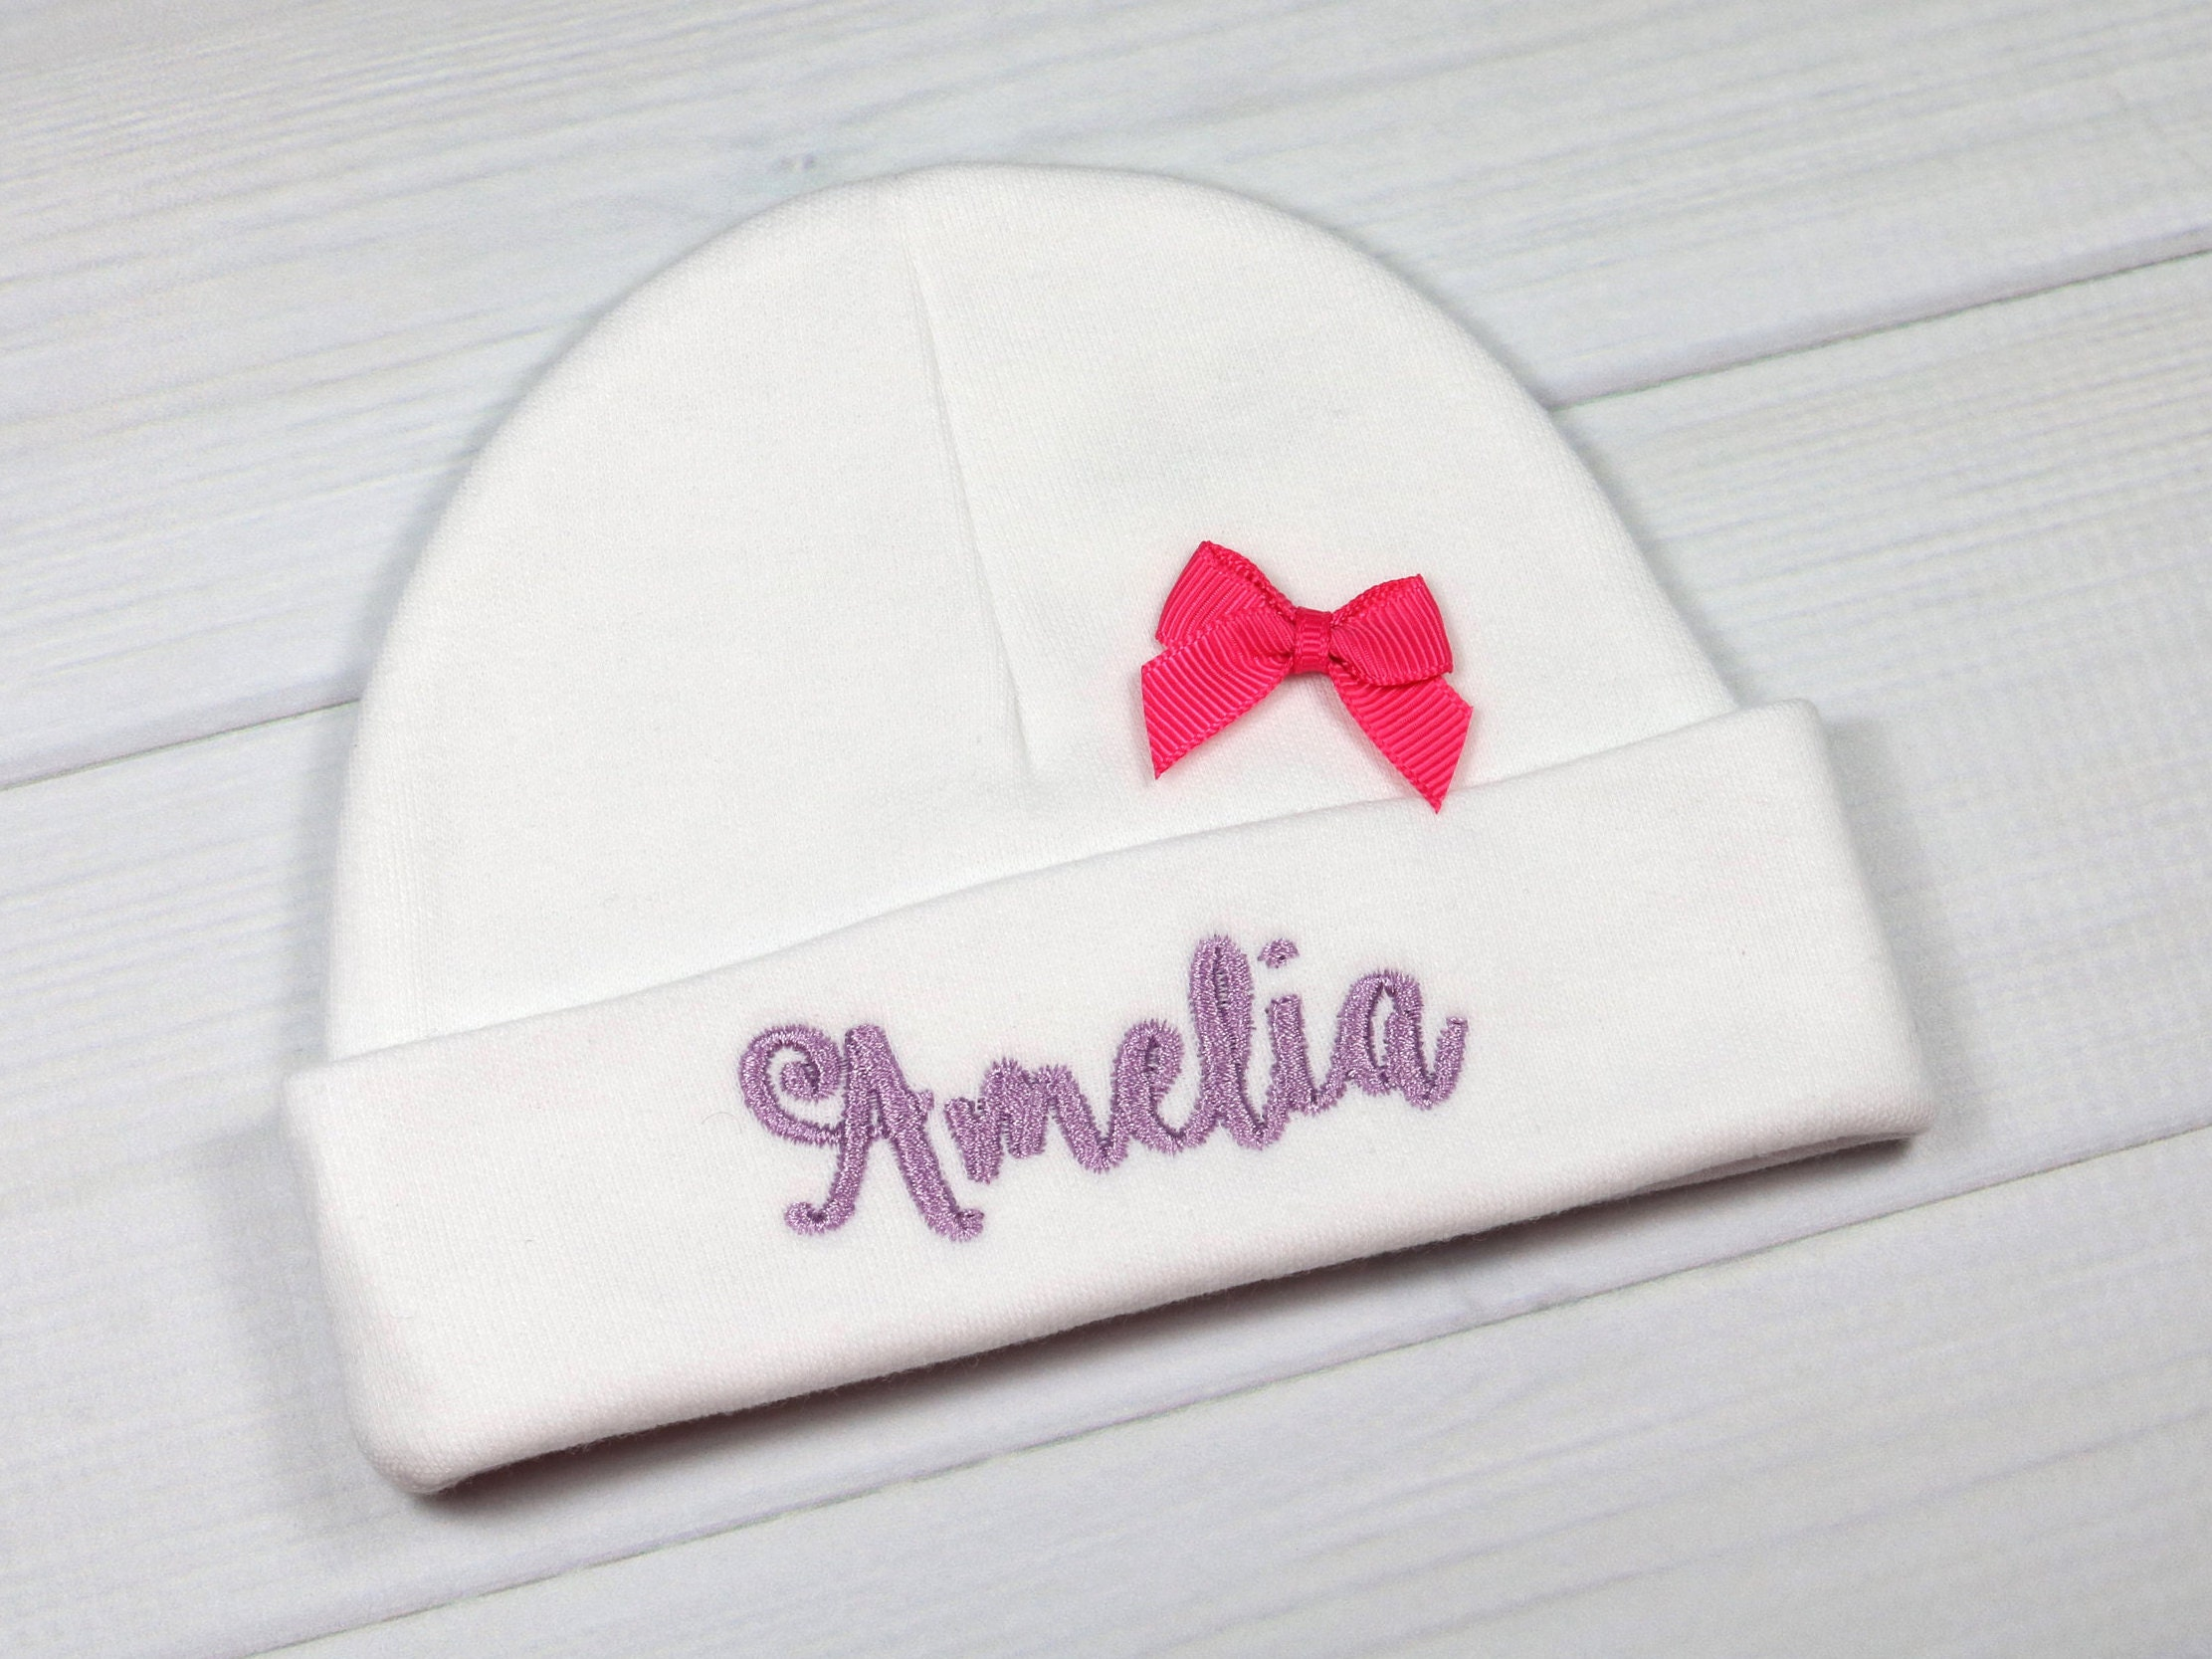 2a425c834 Personalized baby girl hat with pink bow - preemie / newborn / 0-3 months /  3-6 months. gallery photo ...